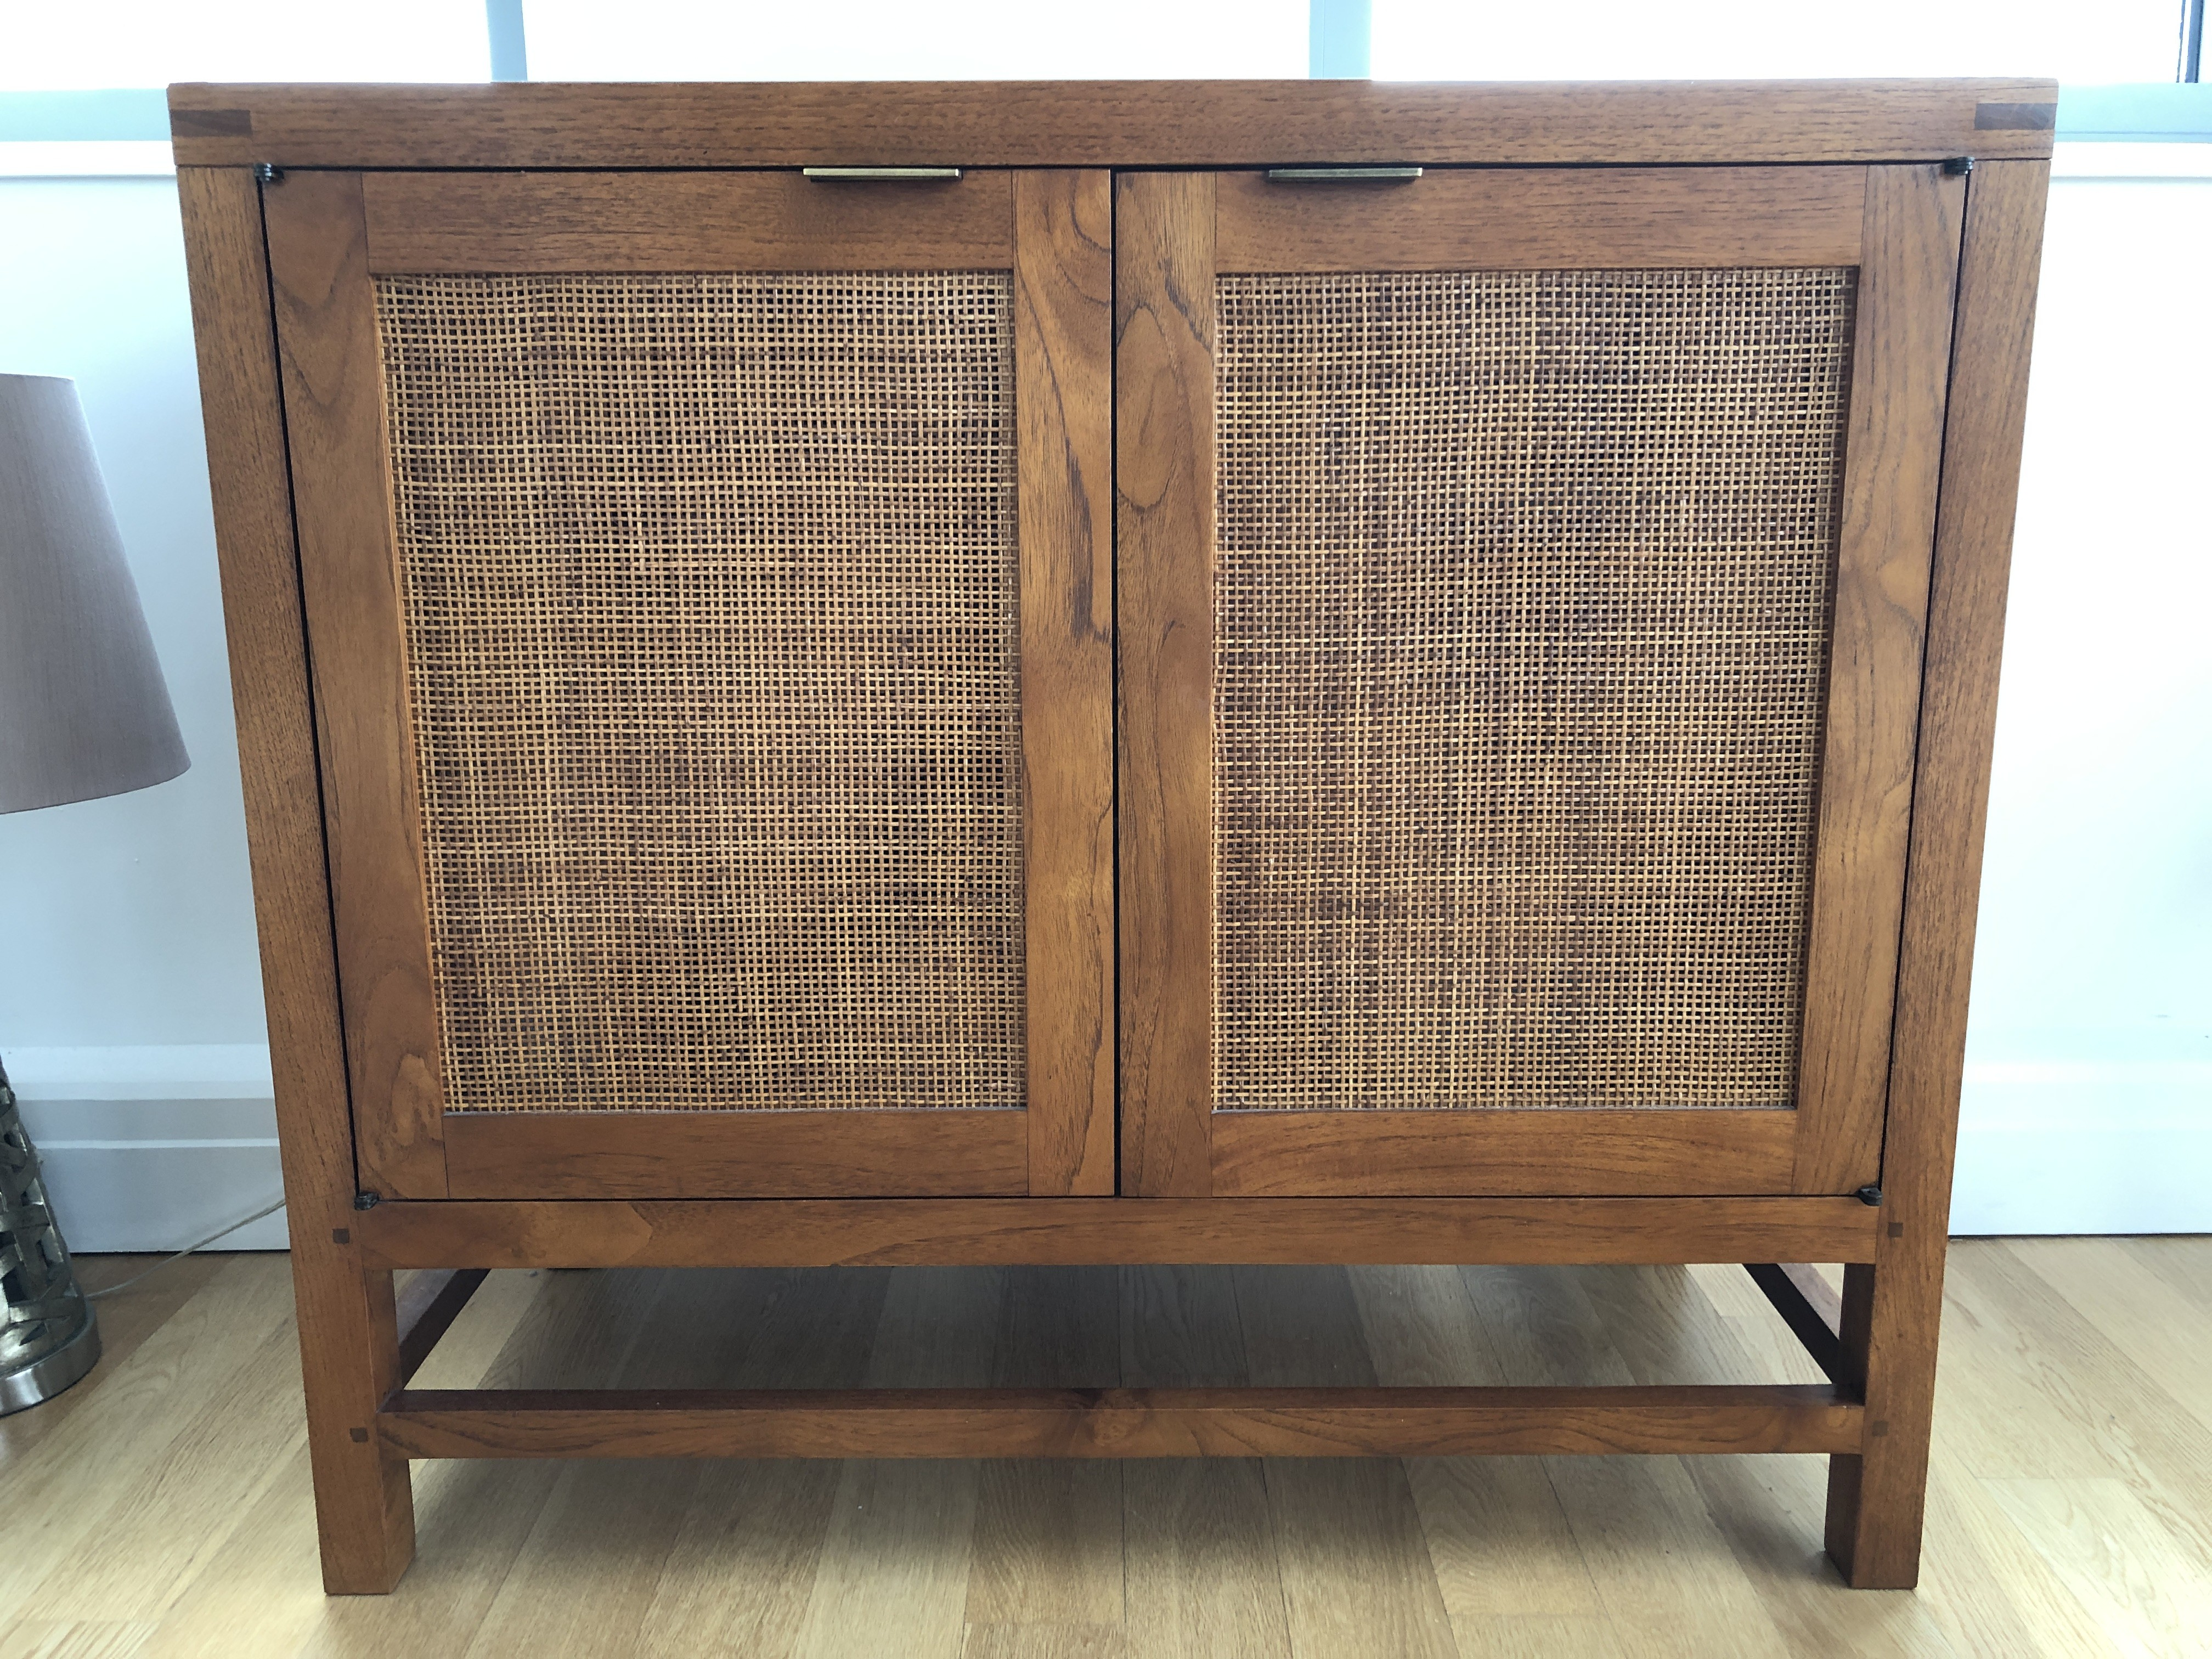 Crate & Barrel Blake Media TV Unit